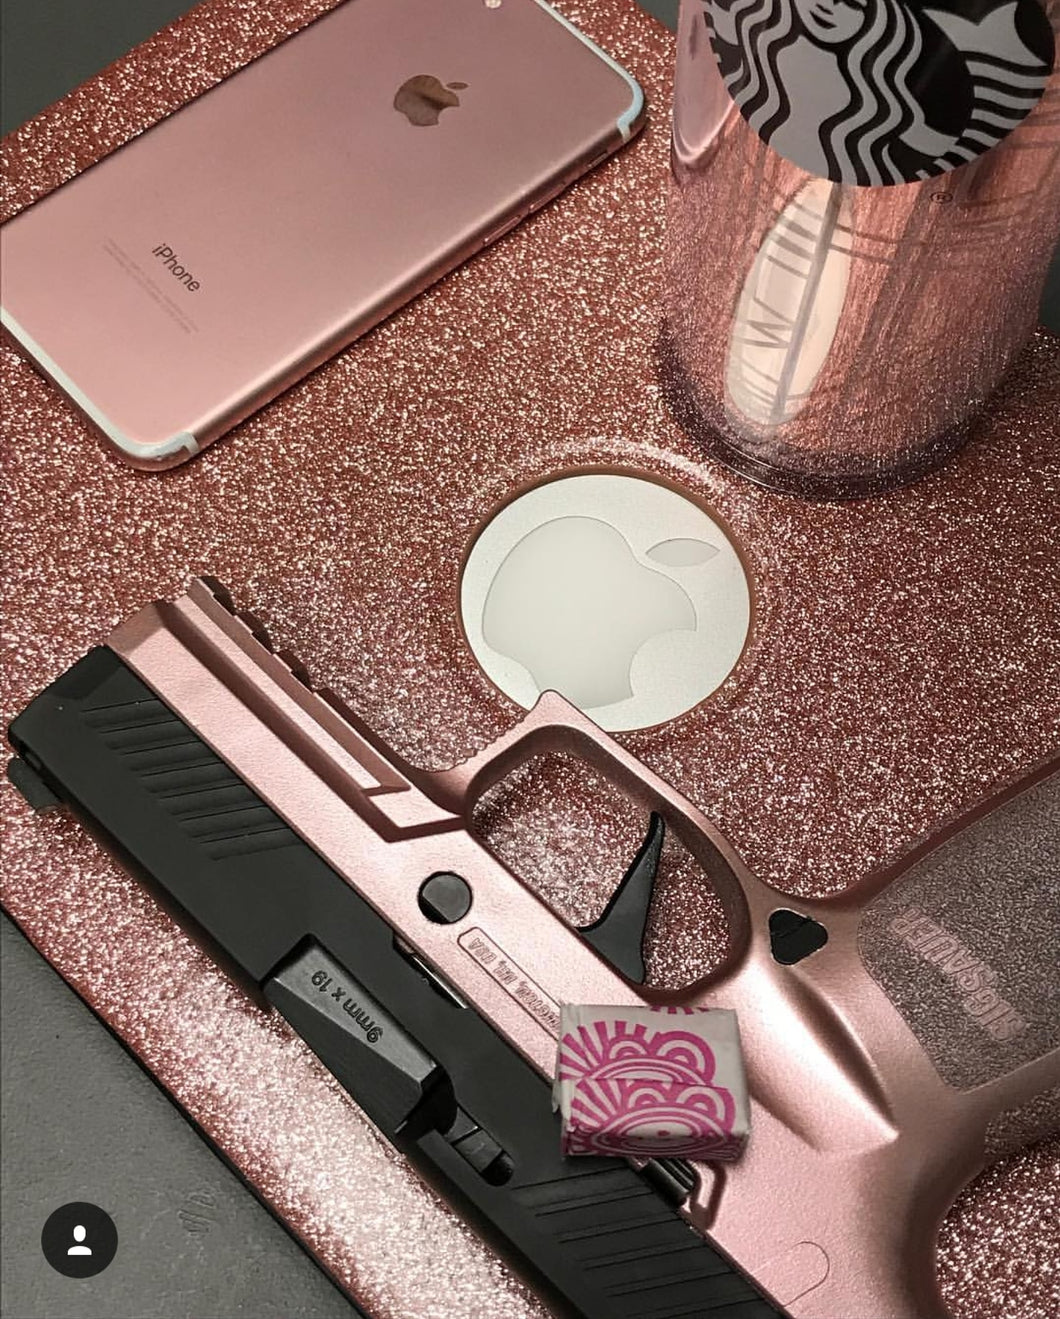 GunCandy Rose Gold, shown with Apple products ( iPhone MacBook )